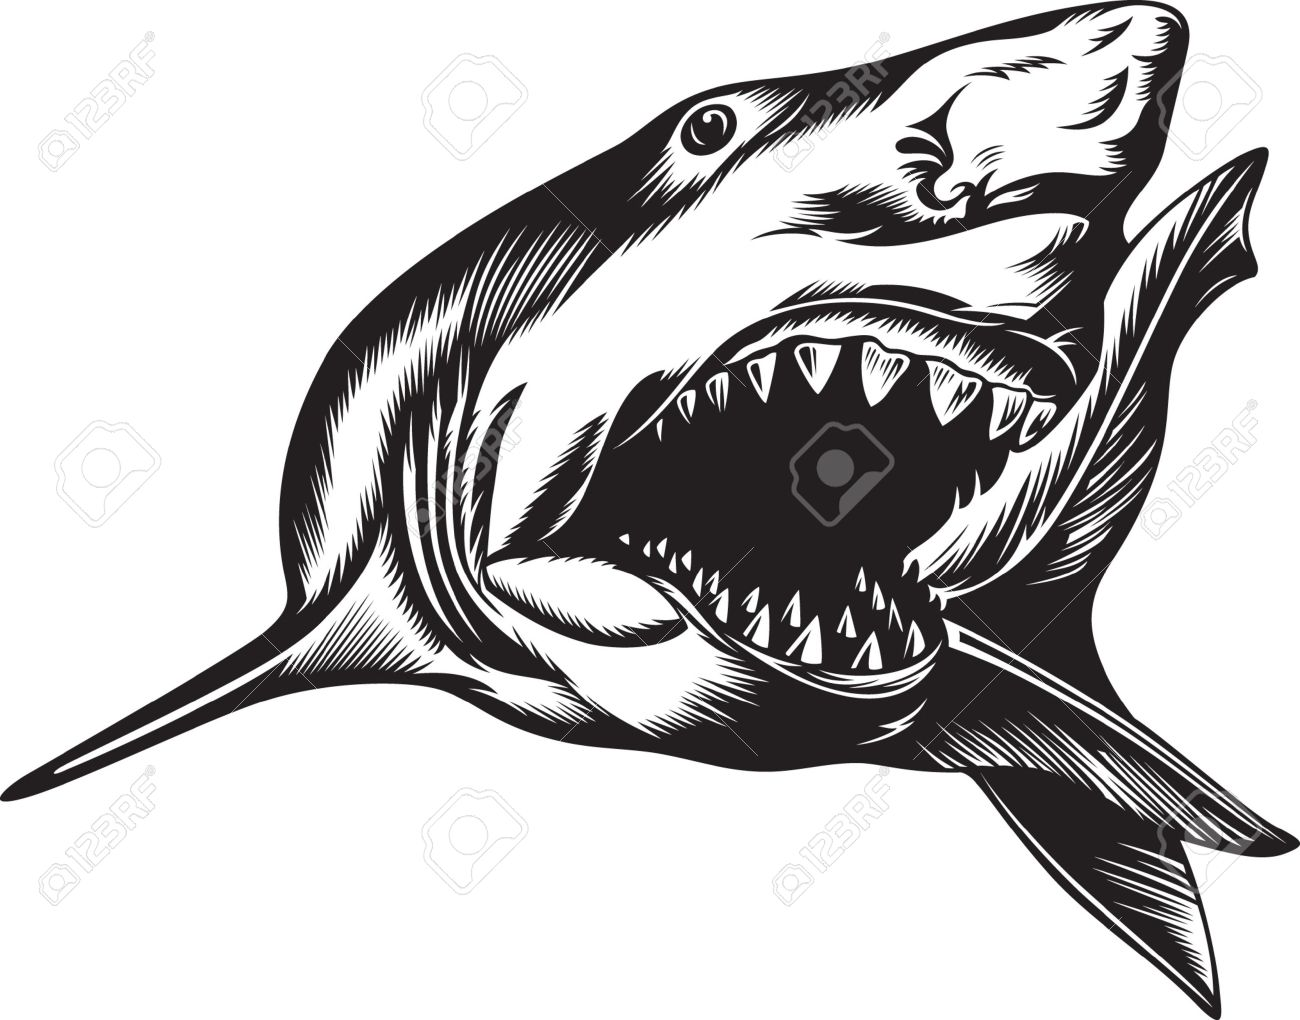 Big Aggressive Shark With Open Mouth Royalty Free Cliparts, Vectors ... for shark drawing open mouth  75sfw